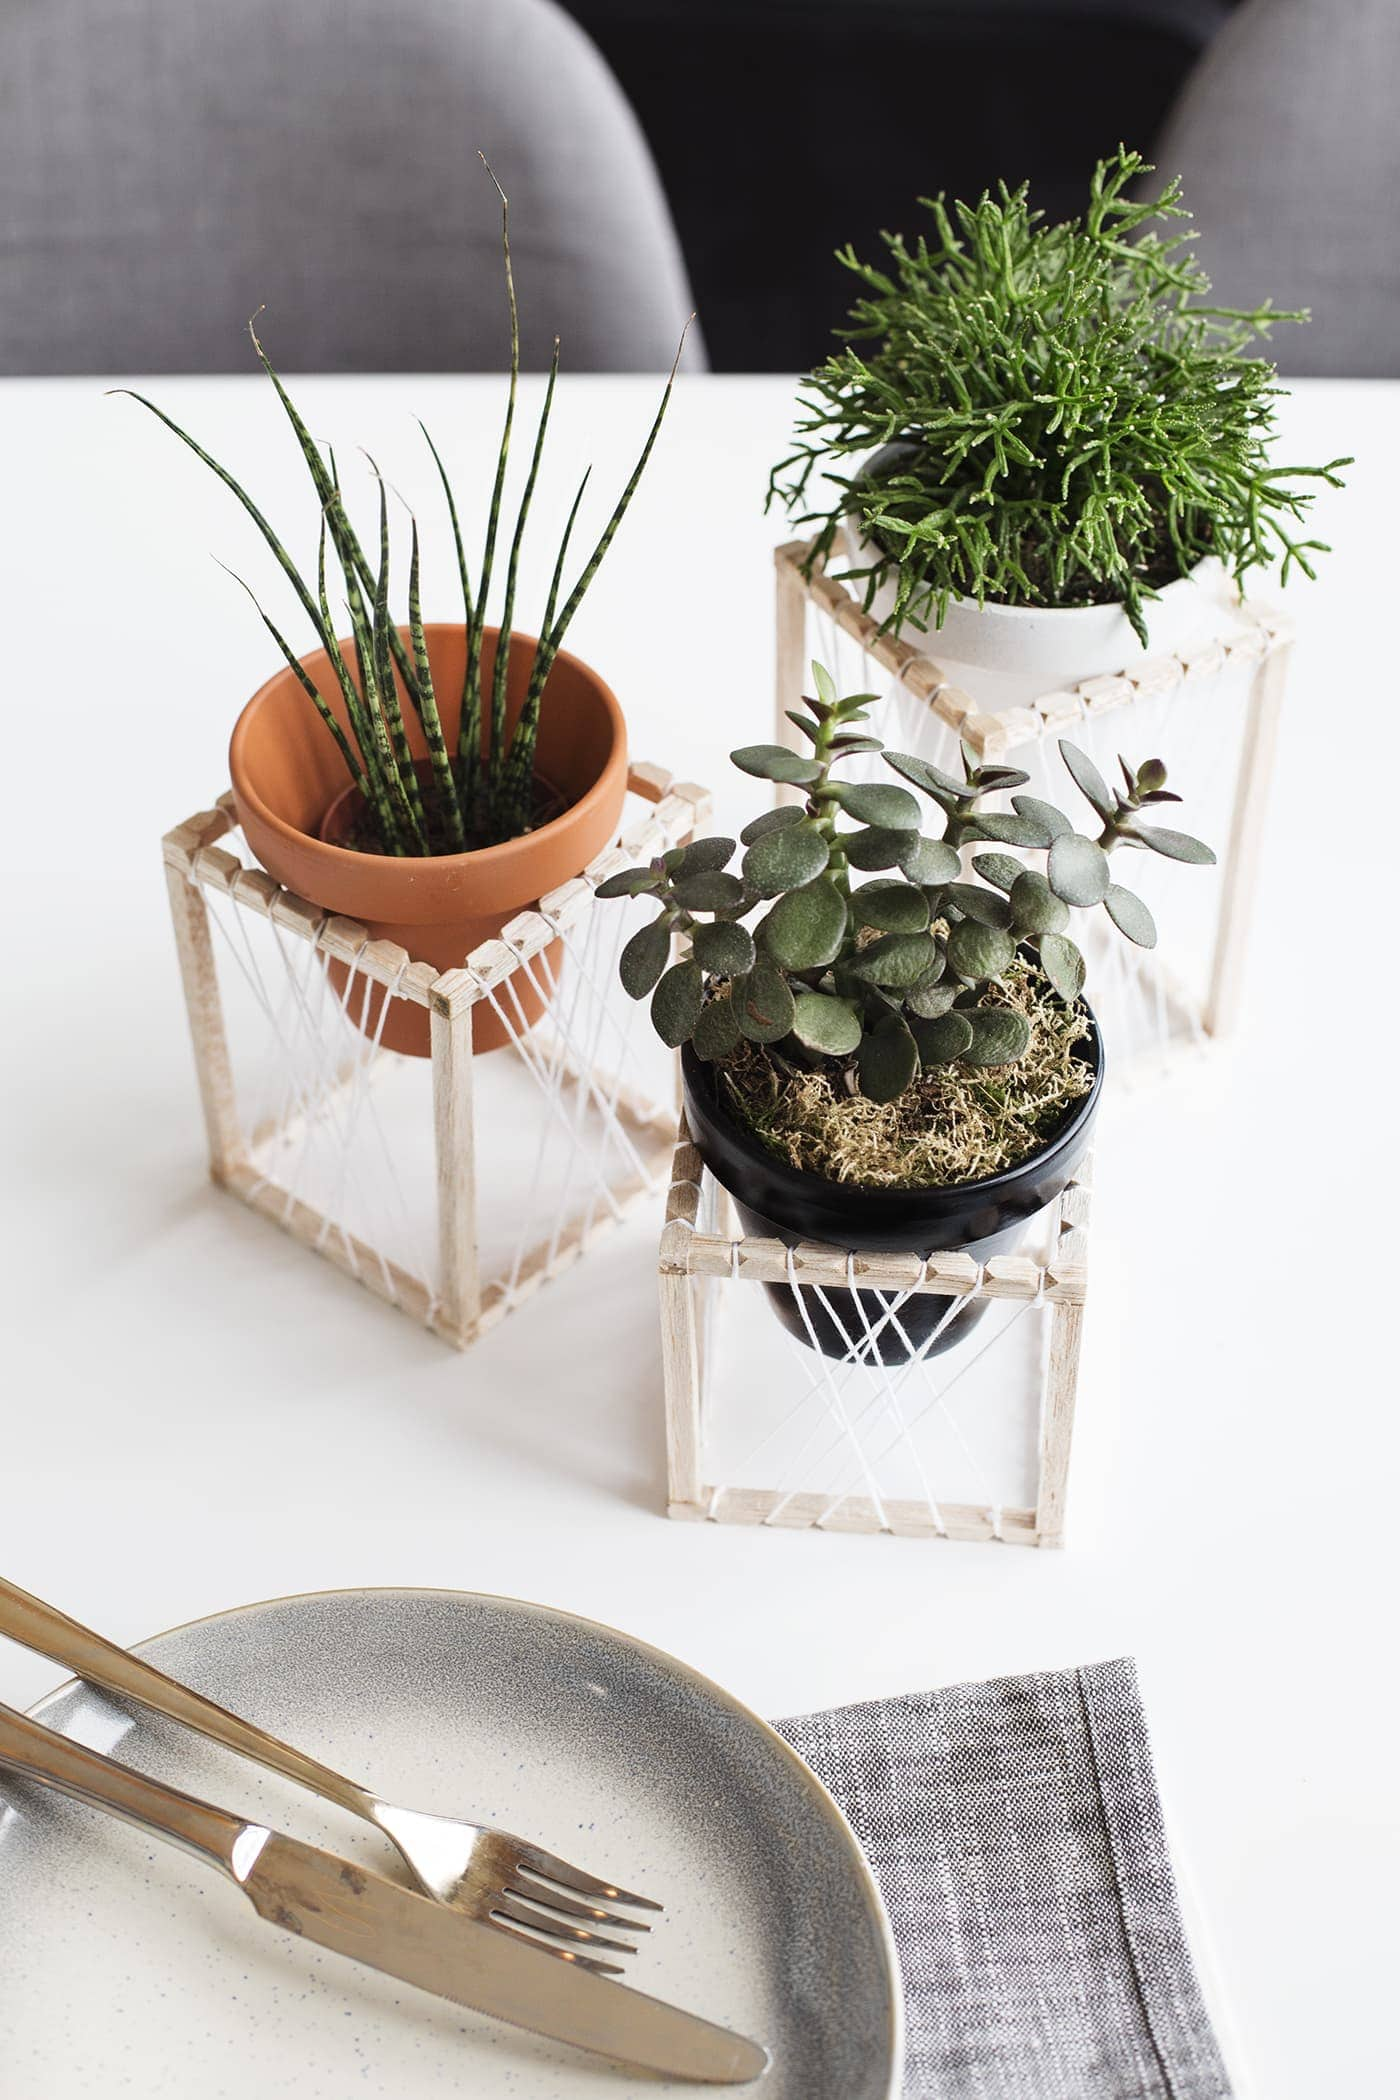 They Work Well On Shelves Or Even As Centre Pieces And Add A Slightly  'boho' Vibe With These Dream Catcher Style Thread Patterns